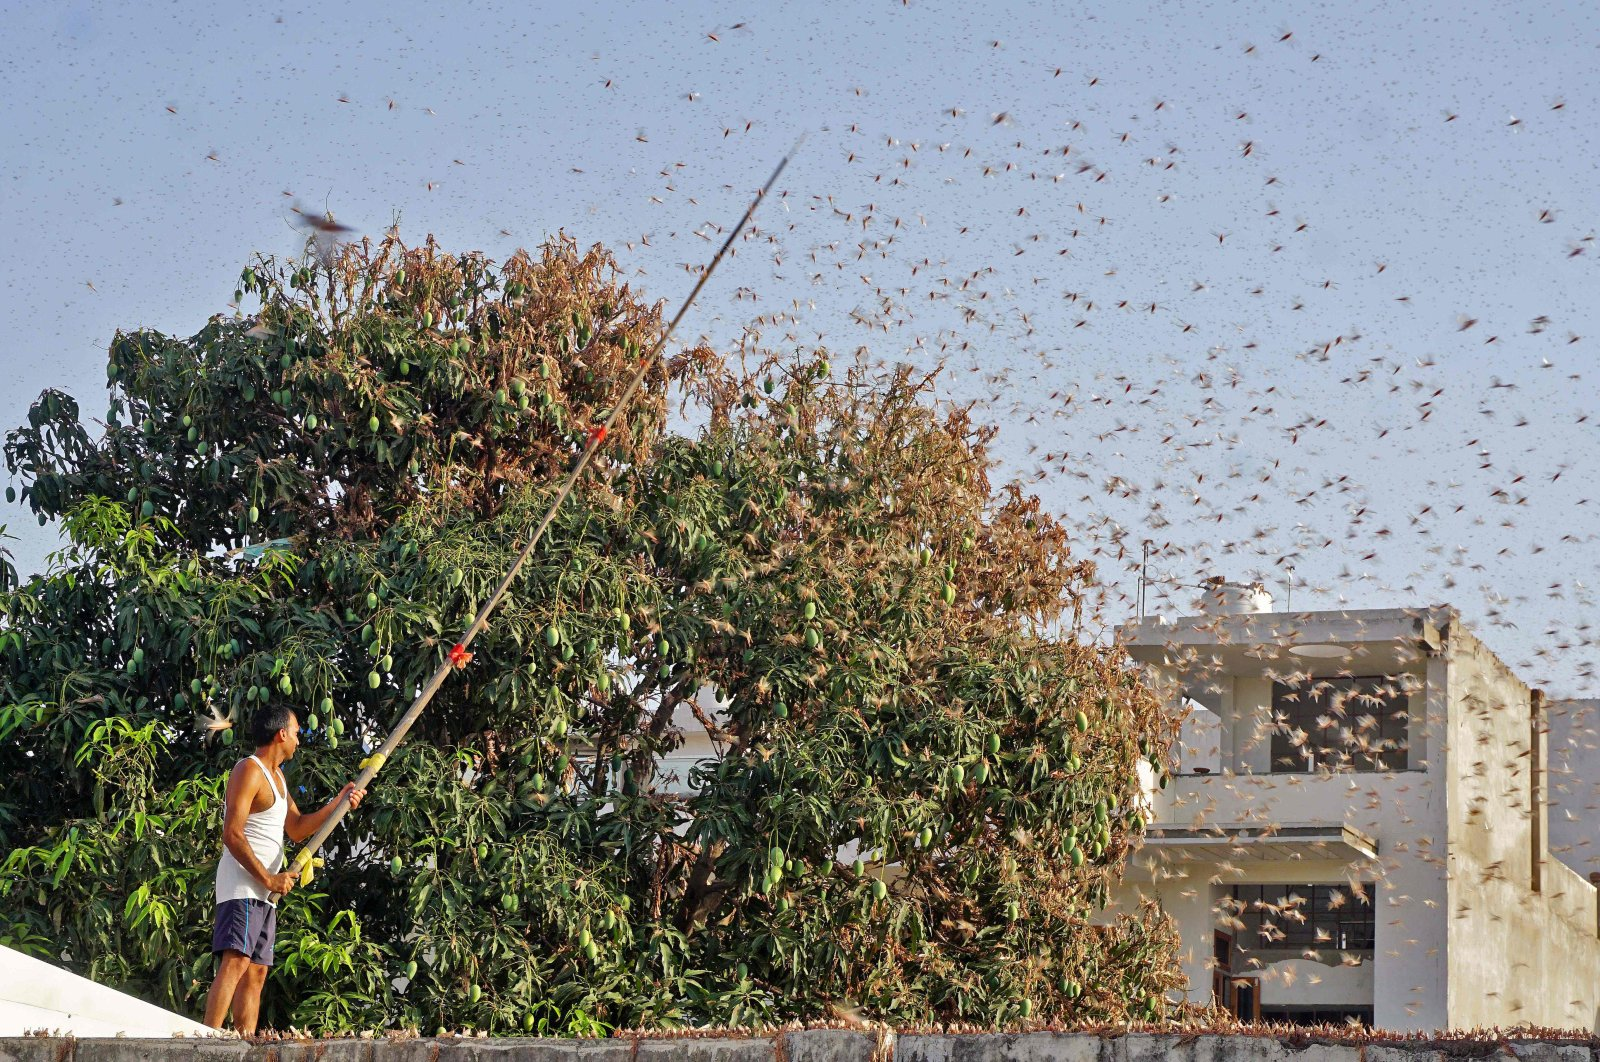 A resident tries to fend off swarms of locusts from a mango tree in a residential area of Jaipur in the Indian state of Rajasthan, May 25, 2020. (AFP Photo)